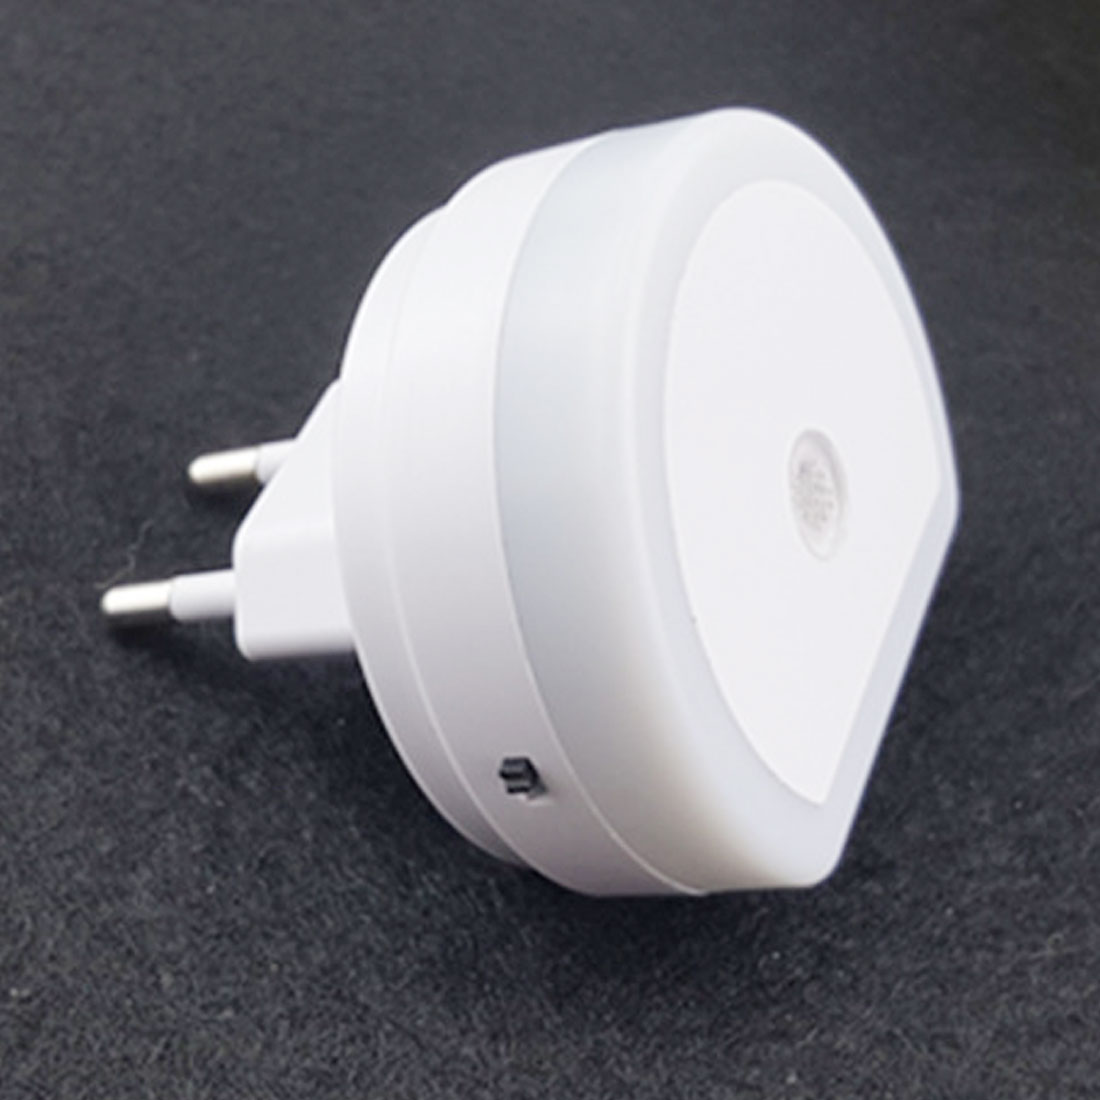 5V 1A LED Night Light With Dual USB Wall Charger Plug Light Sensor EU/US Plug Socket Lamp